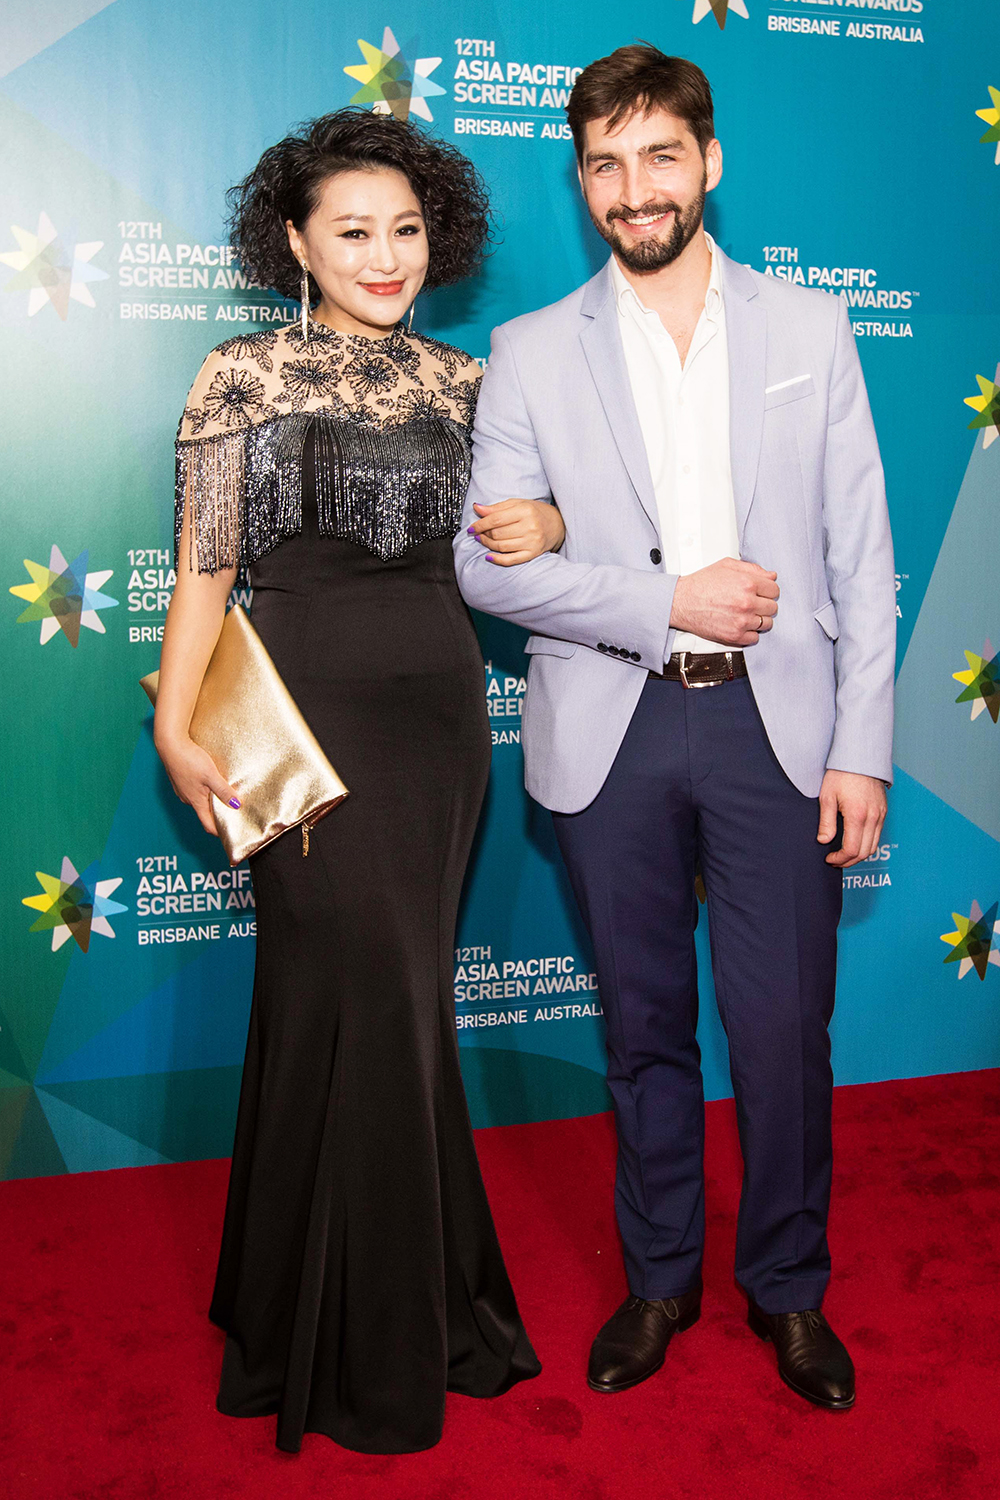 Asia Pacific Screen Awards guests walking the Red Carpet at the Brisbane Exhibition and Convention Centre